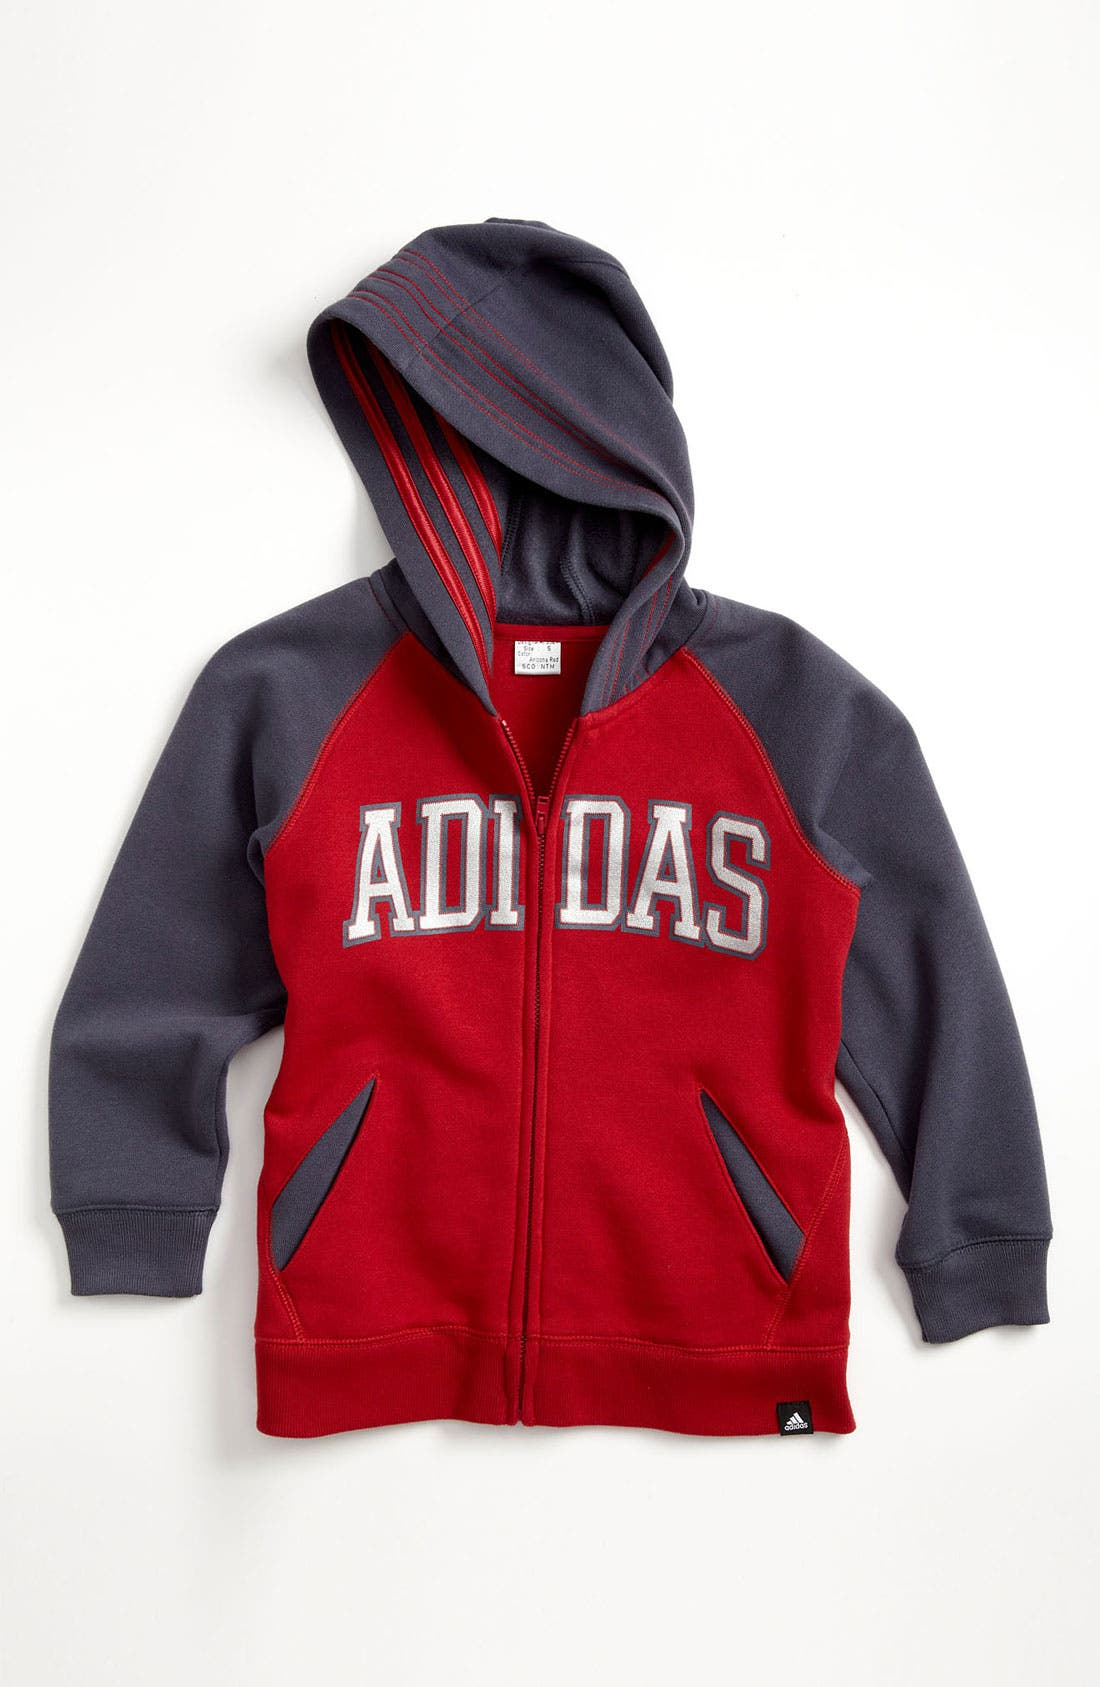 Alternate Image 1 Selected - adidas 'Adi' Hoodie (Little Boys)